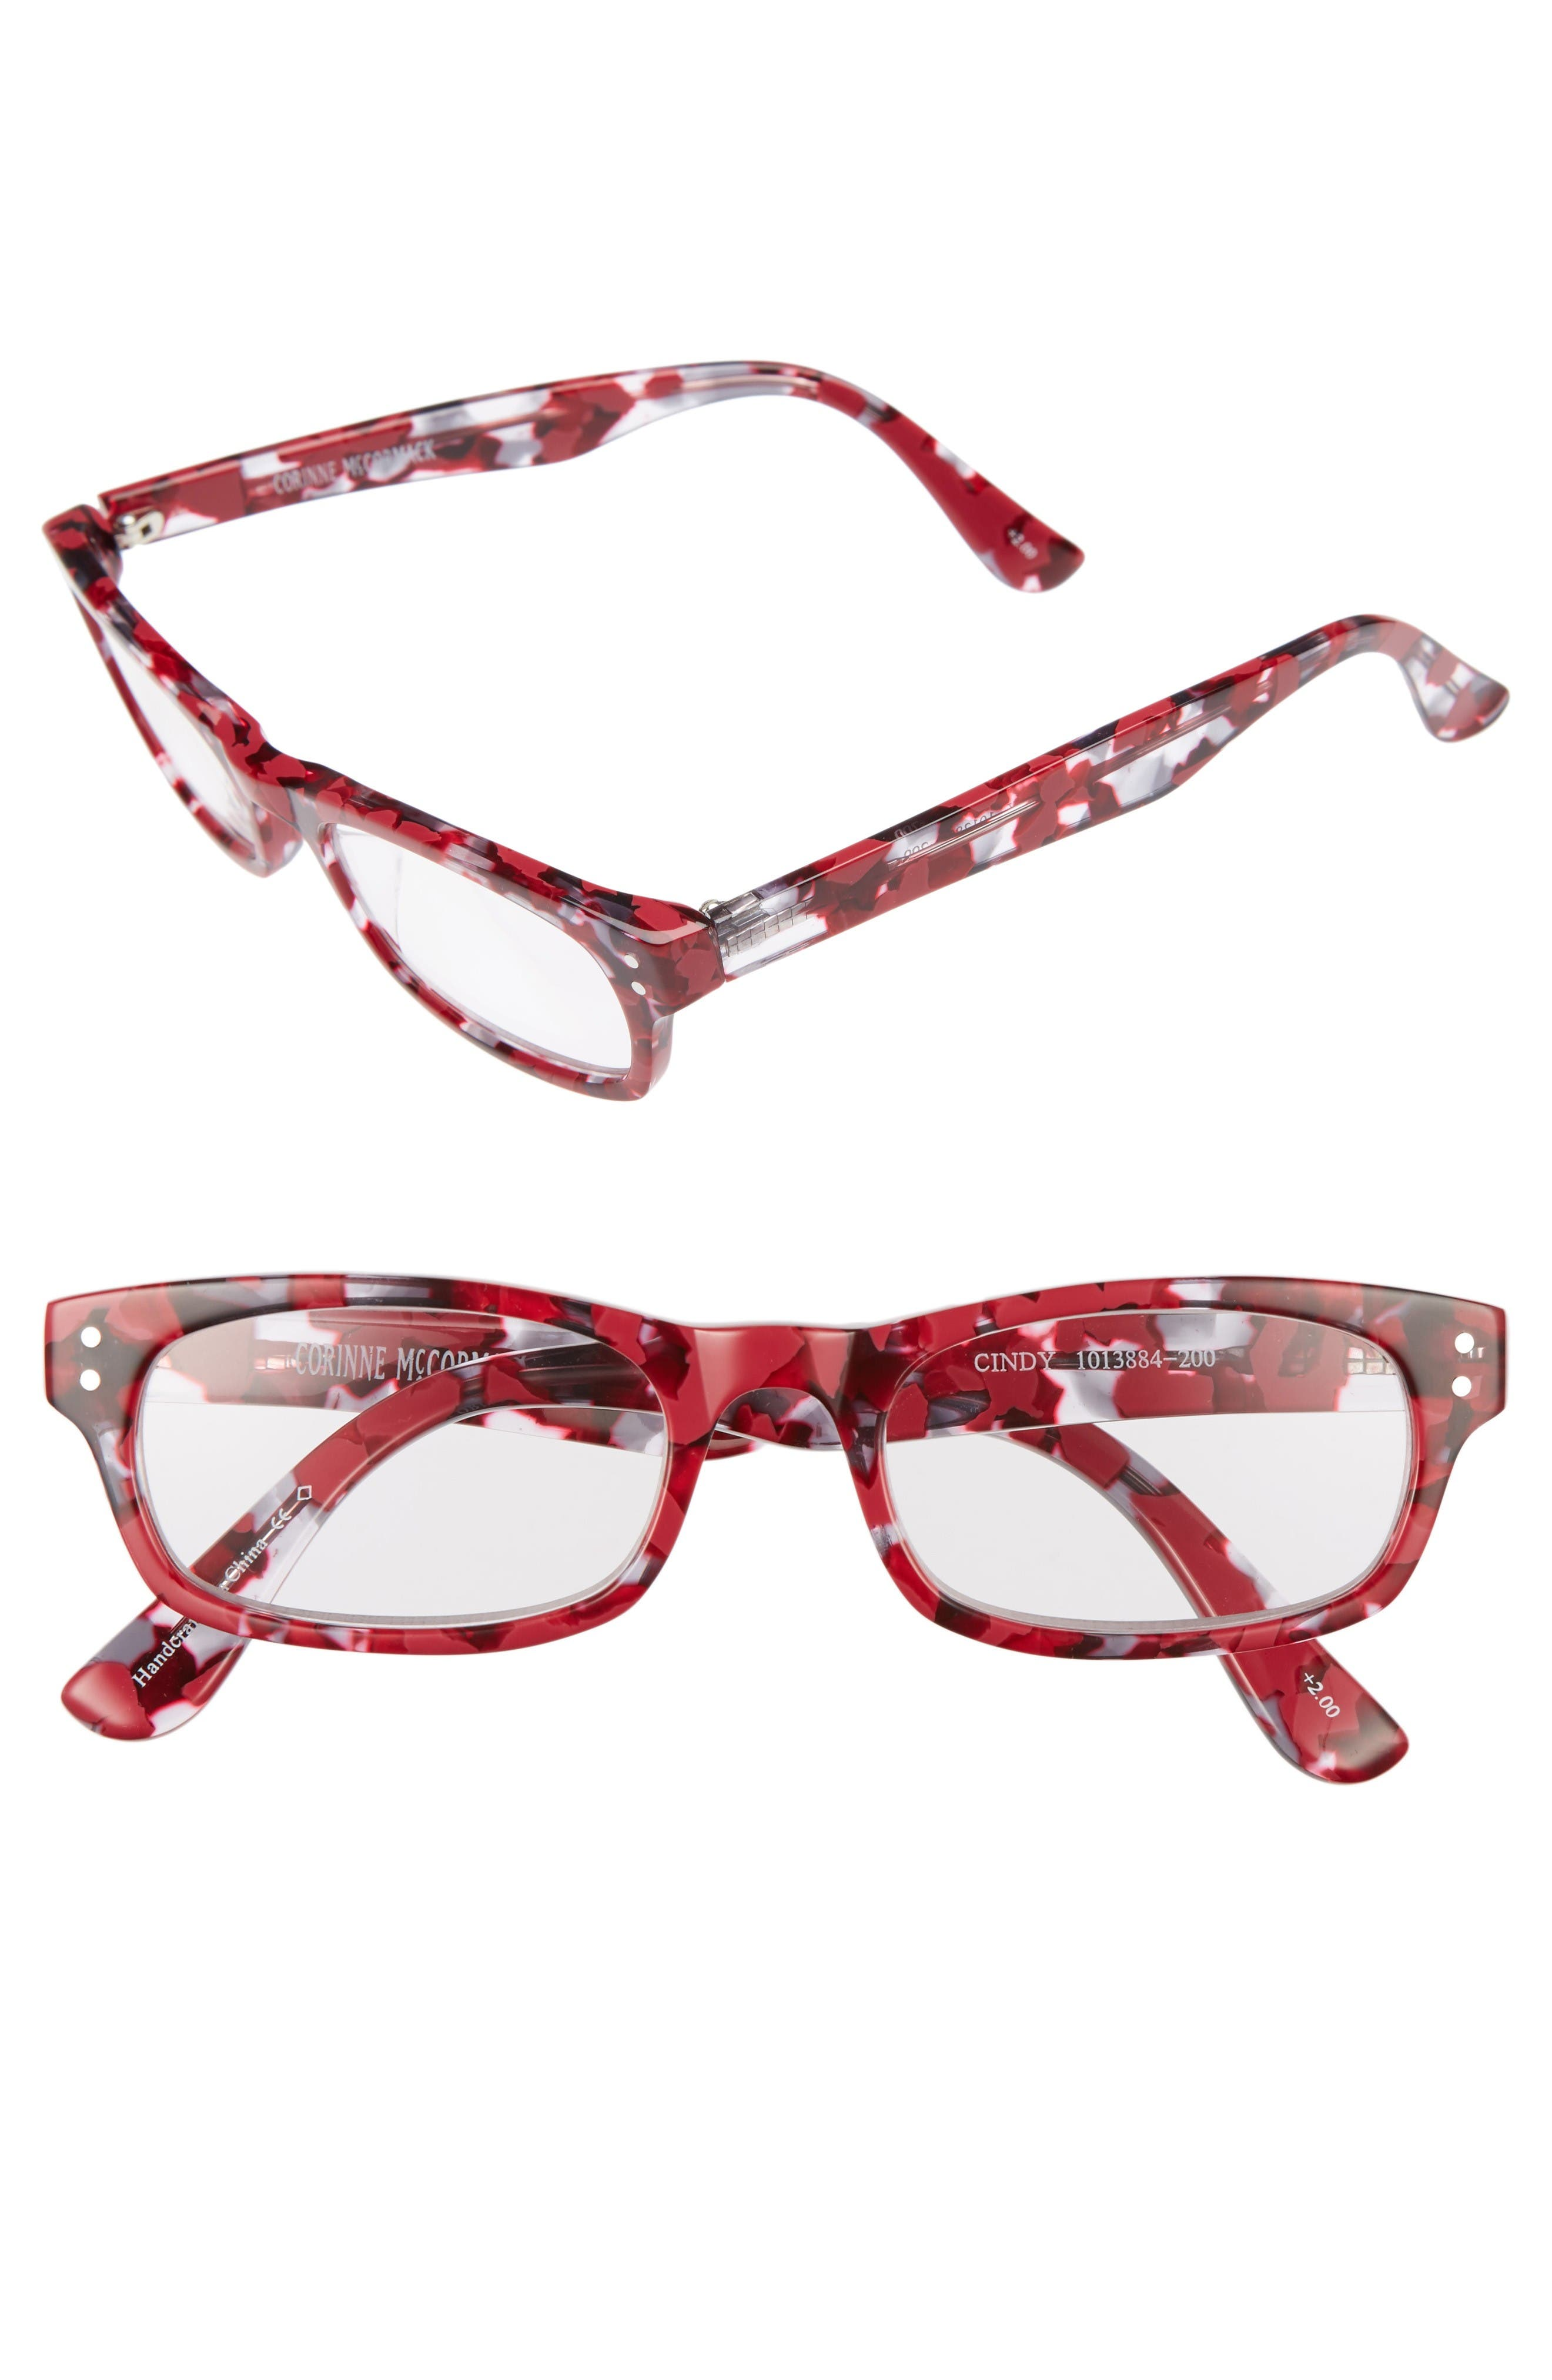 Cindy 50mm Reading Glasses,                         Main,                         color, Berry